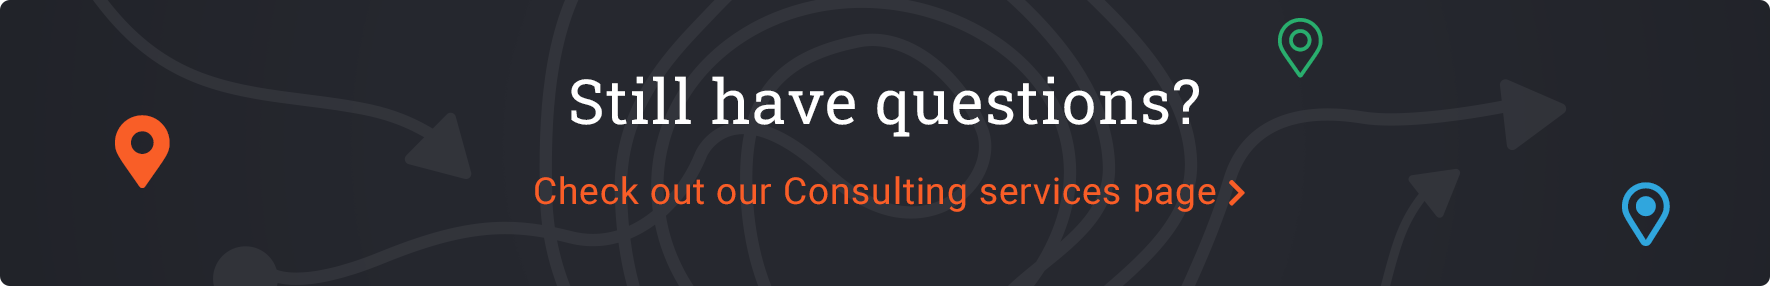 Still have questions? Check out our Consulting services page   Acro Media